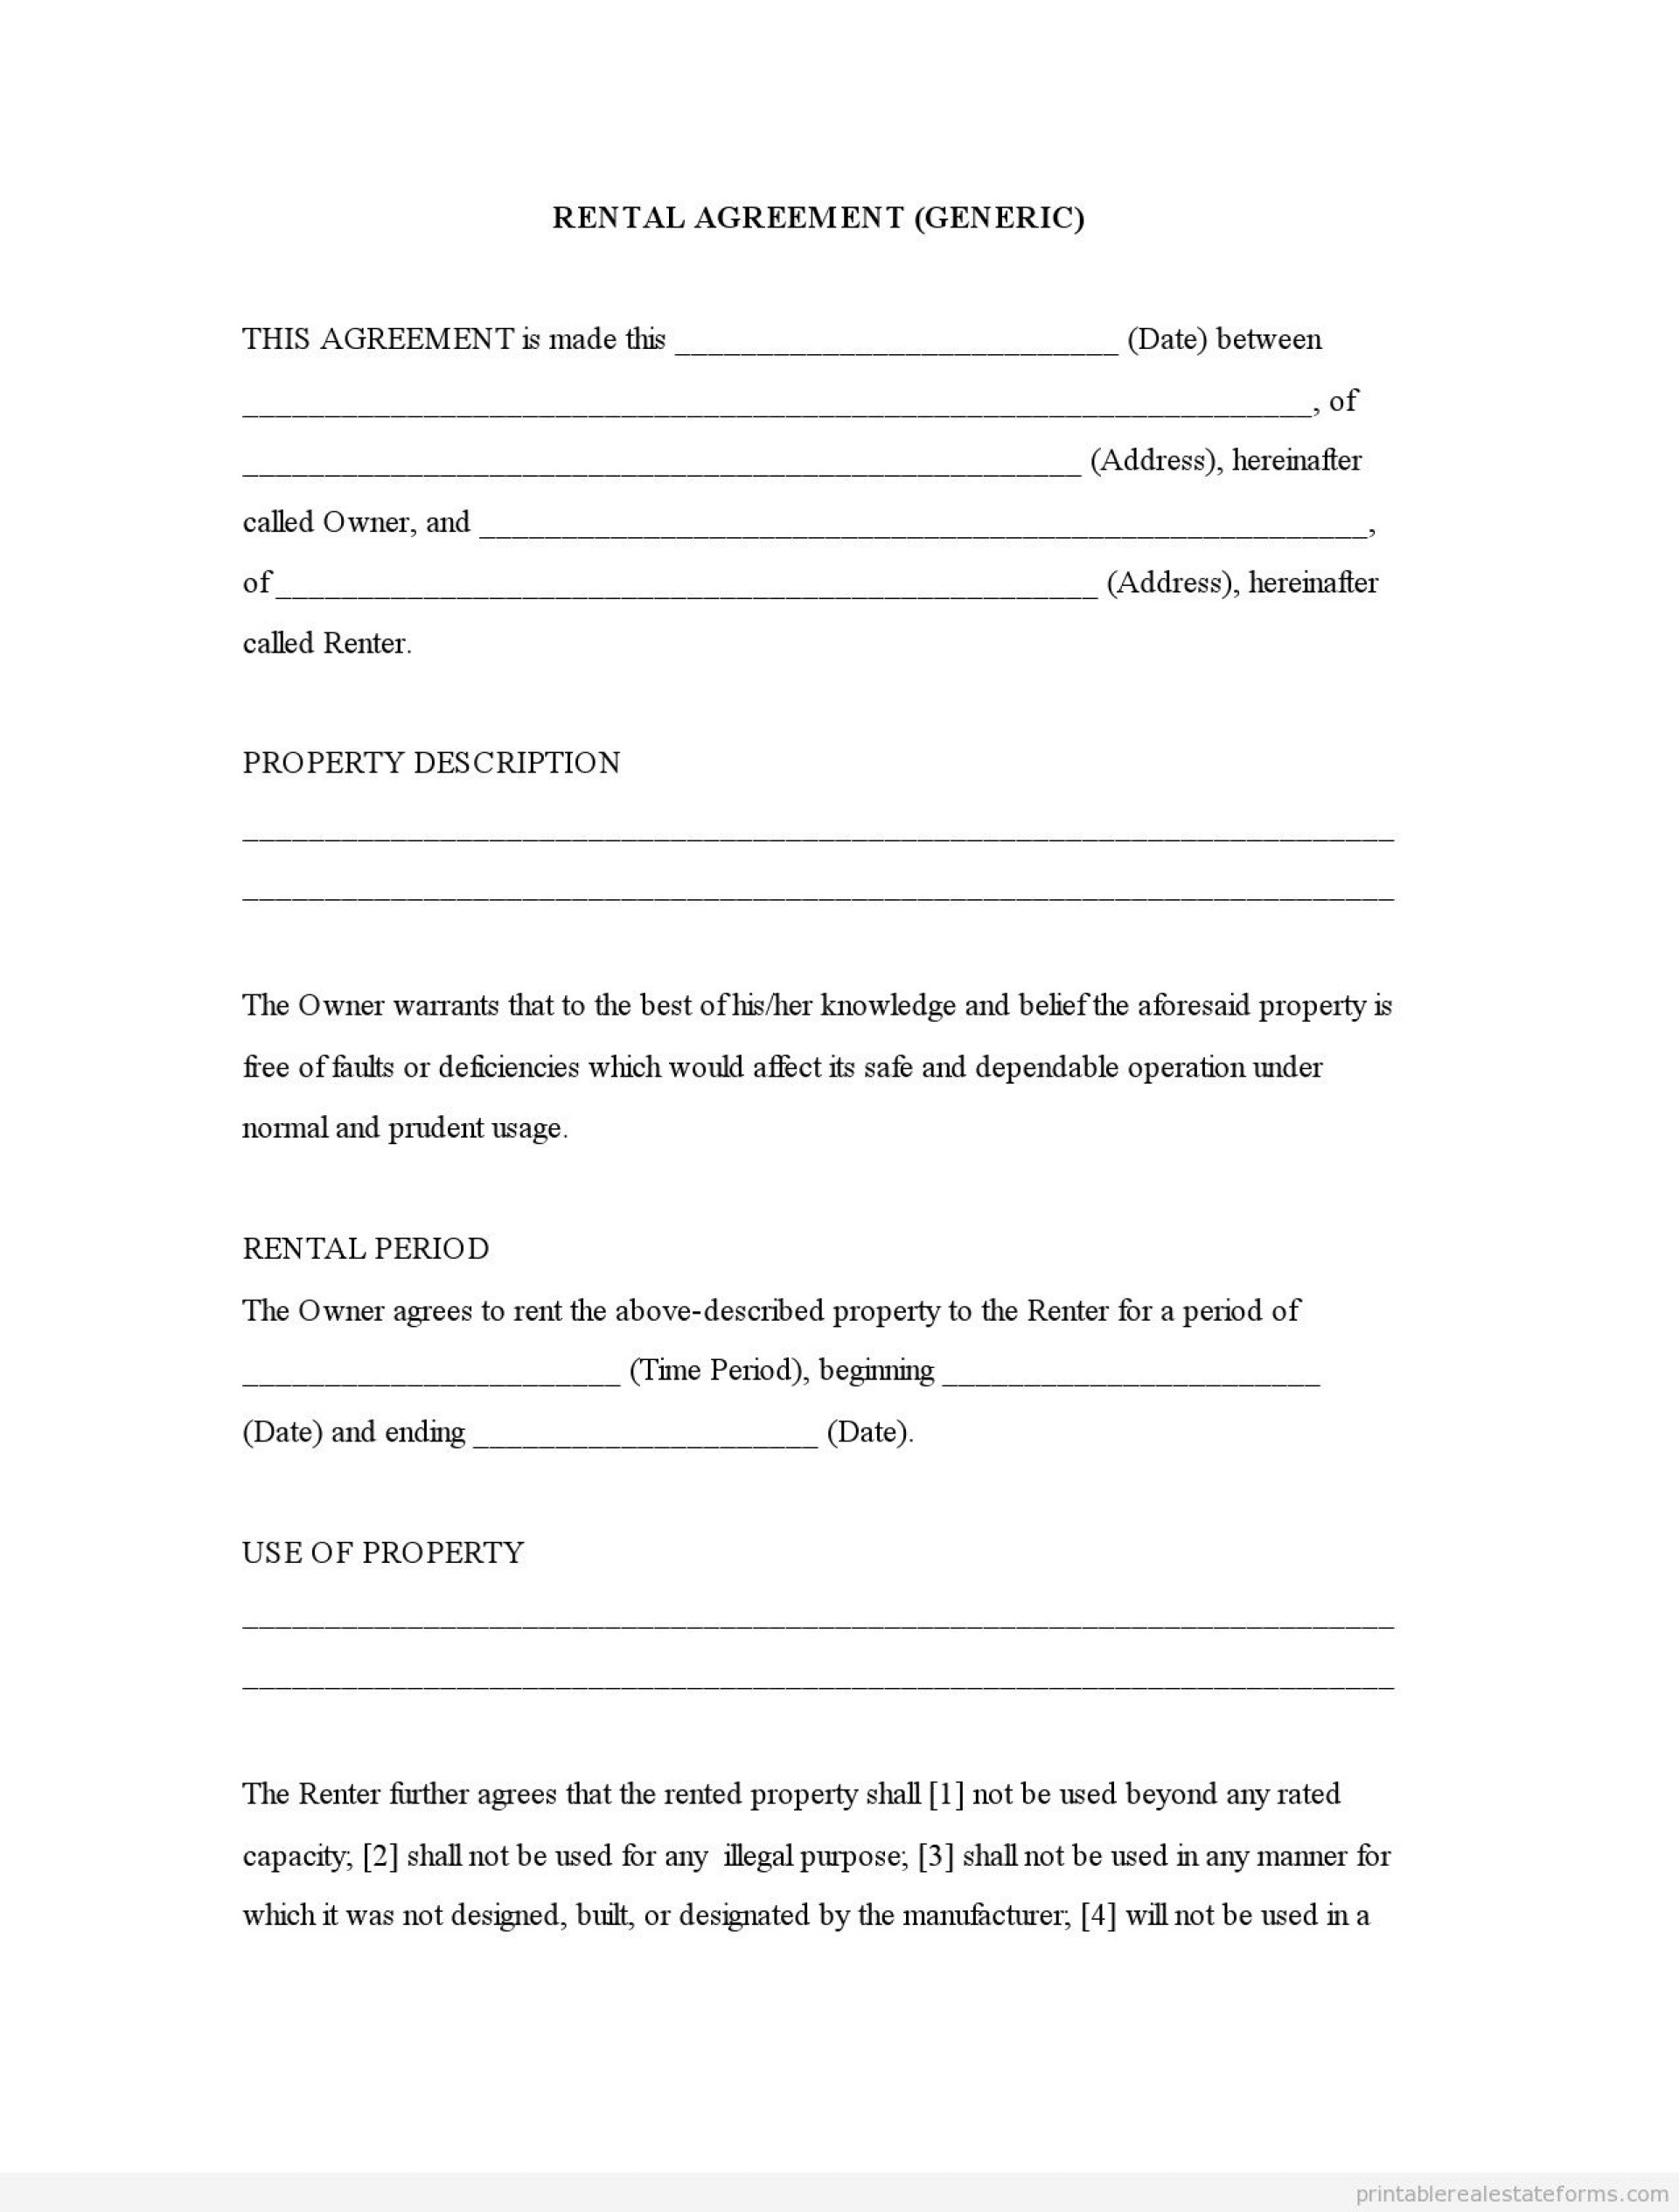 005 Stirring Rental Agreement Template Free Image  Tenancy Rent Pdf1920